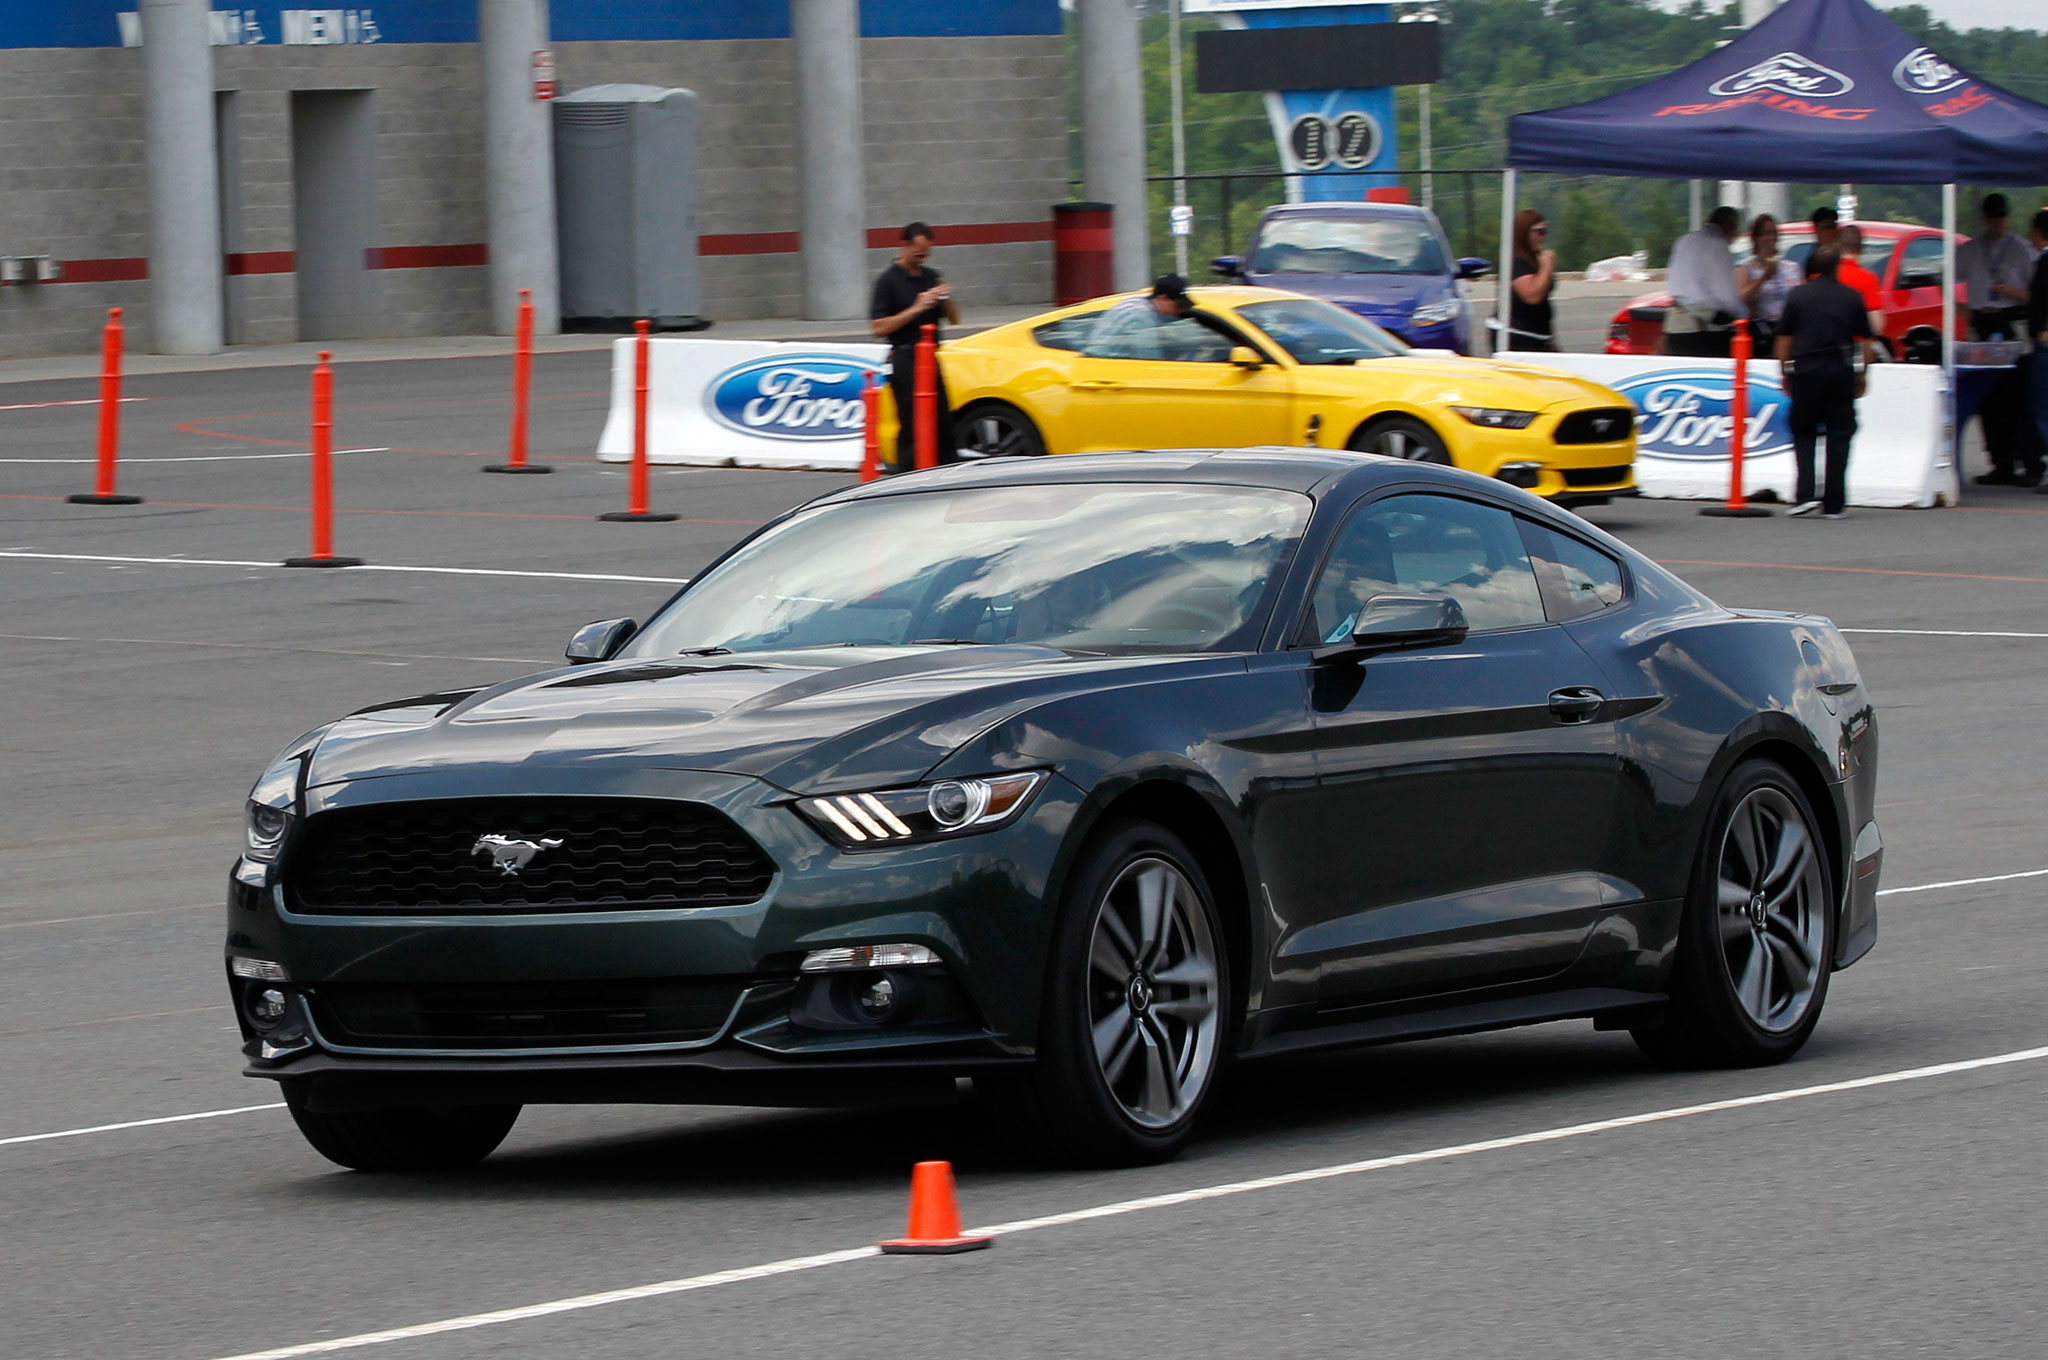 2017 Ford Mustang 2 3 Ecoboost Performance Package